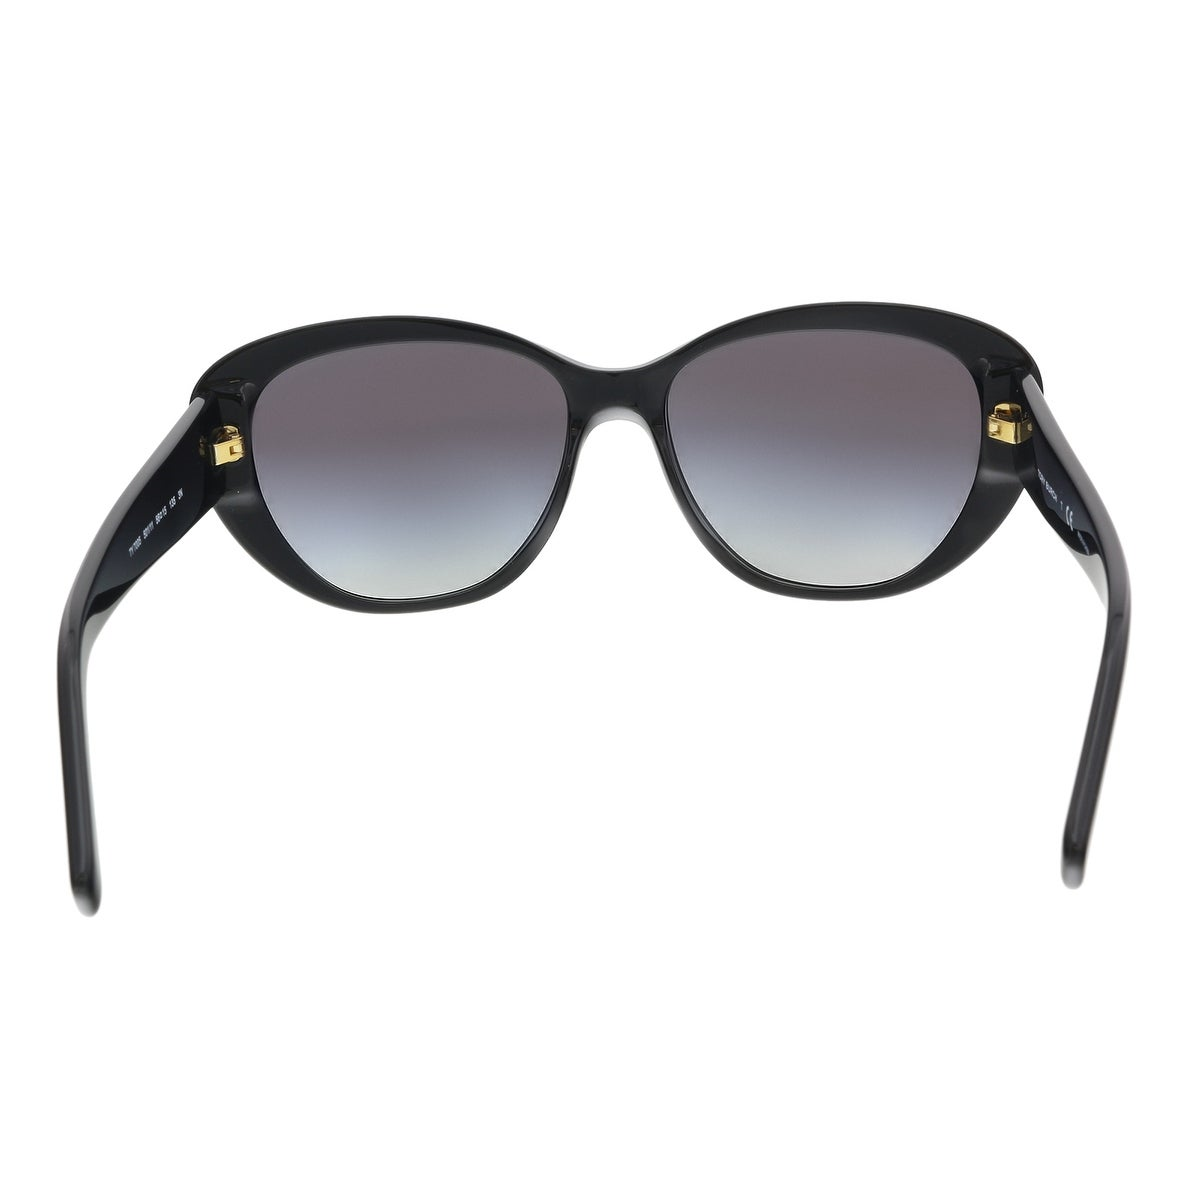 0300dd6c8381 Shop Tory Burch TY7005 501/11 Black Cat eye Sunglasses - 56-15-135 - Free  Shipping Today - Overstock - 21226738